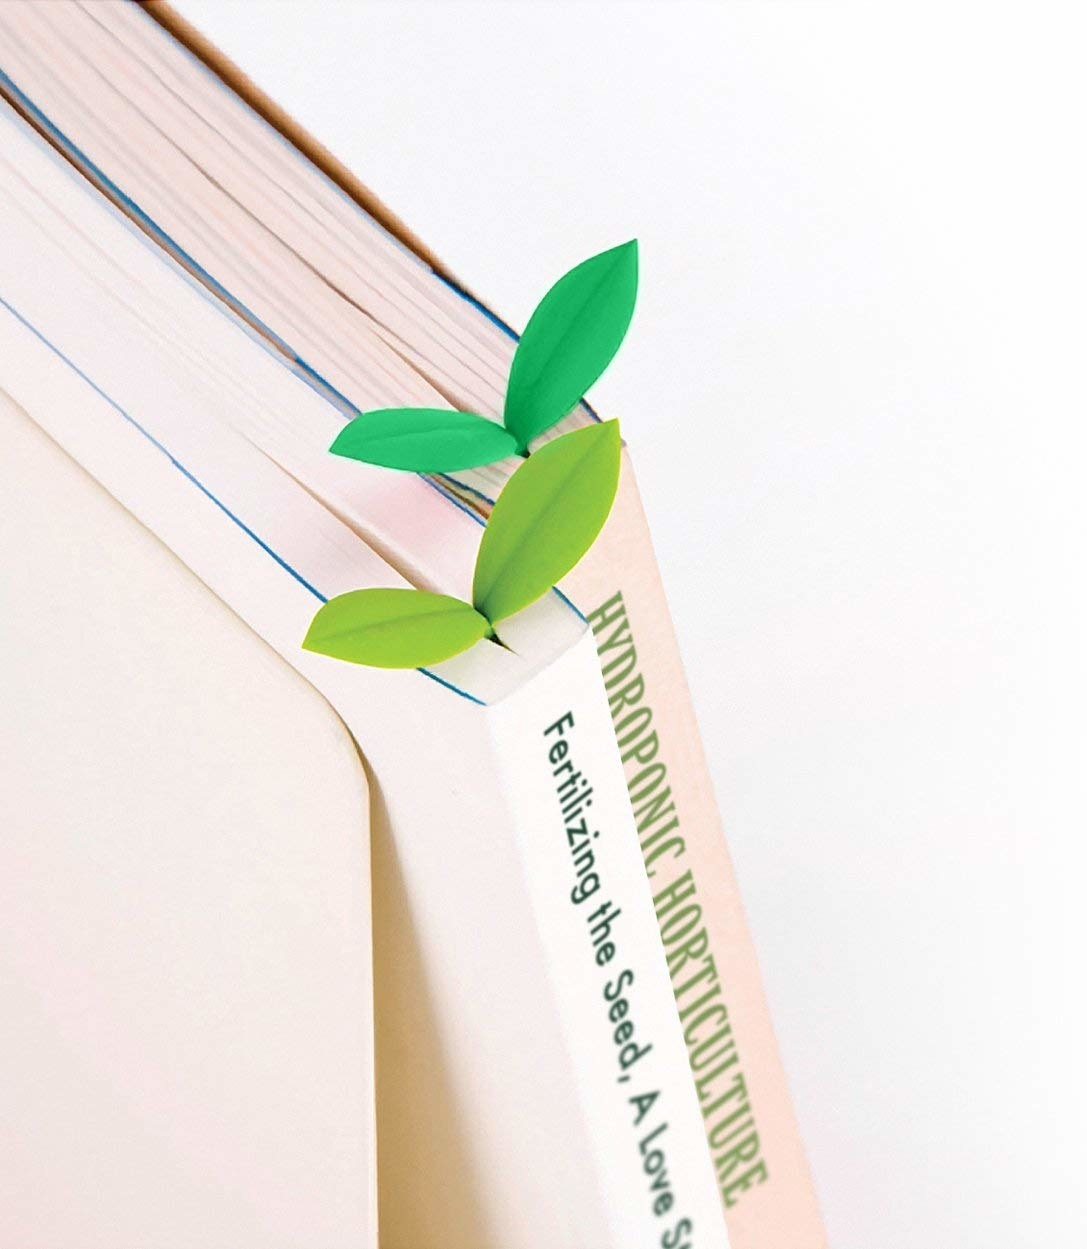 The tiny bookmarks sticking out the tops of books and looking like little leaves